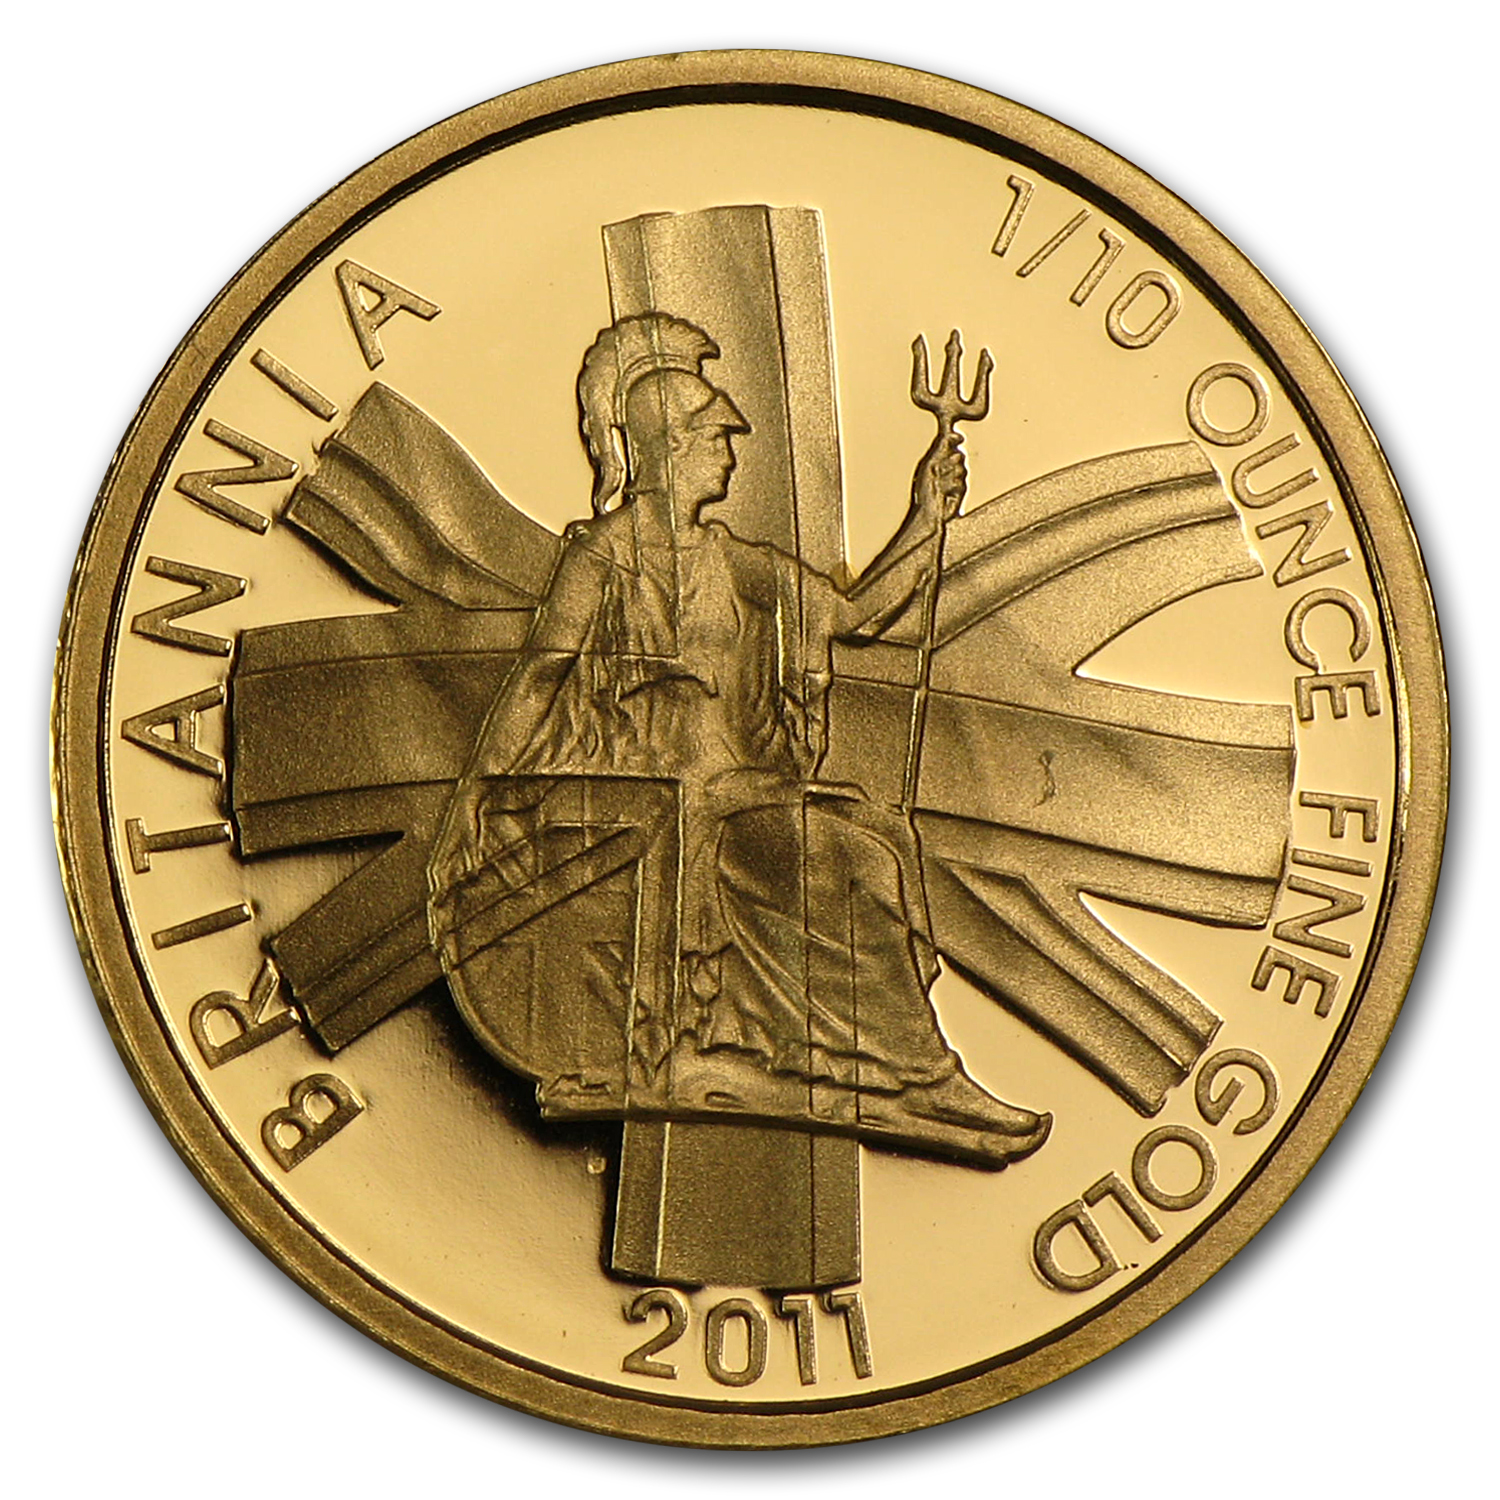 2011 1/10 oz Proof Gold Britannia - Capsule